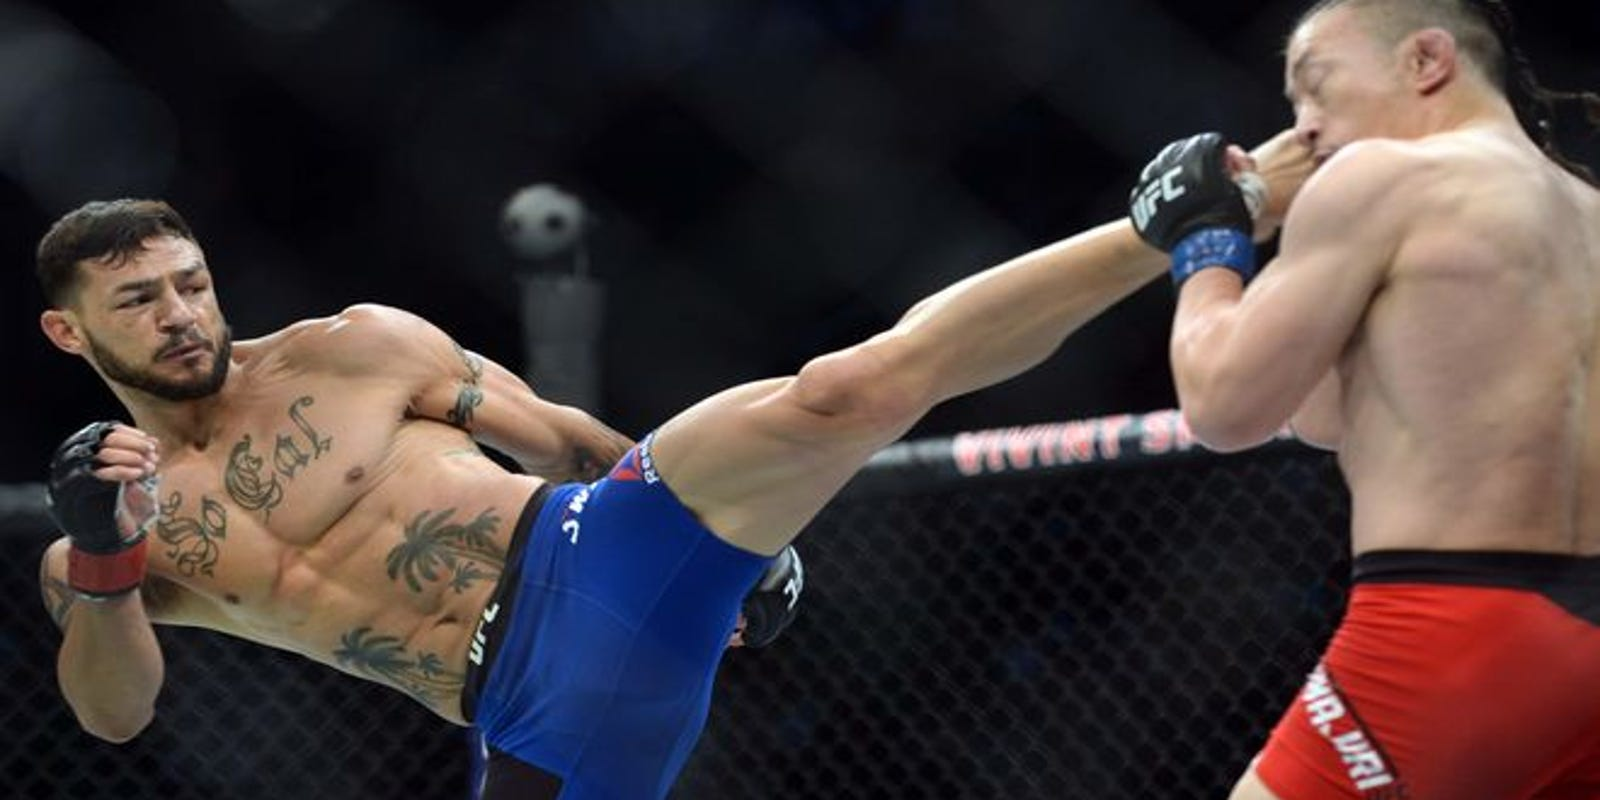 UFC's Cub Swanson still aiming for end-of-year return while rehabbing left knee